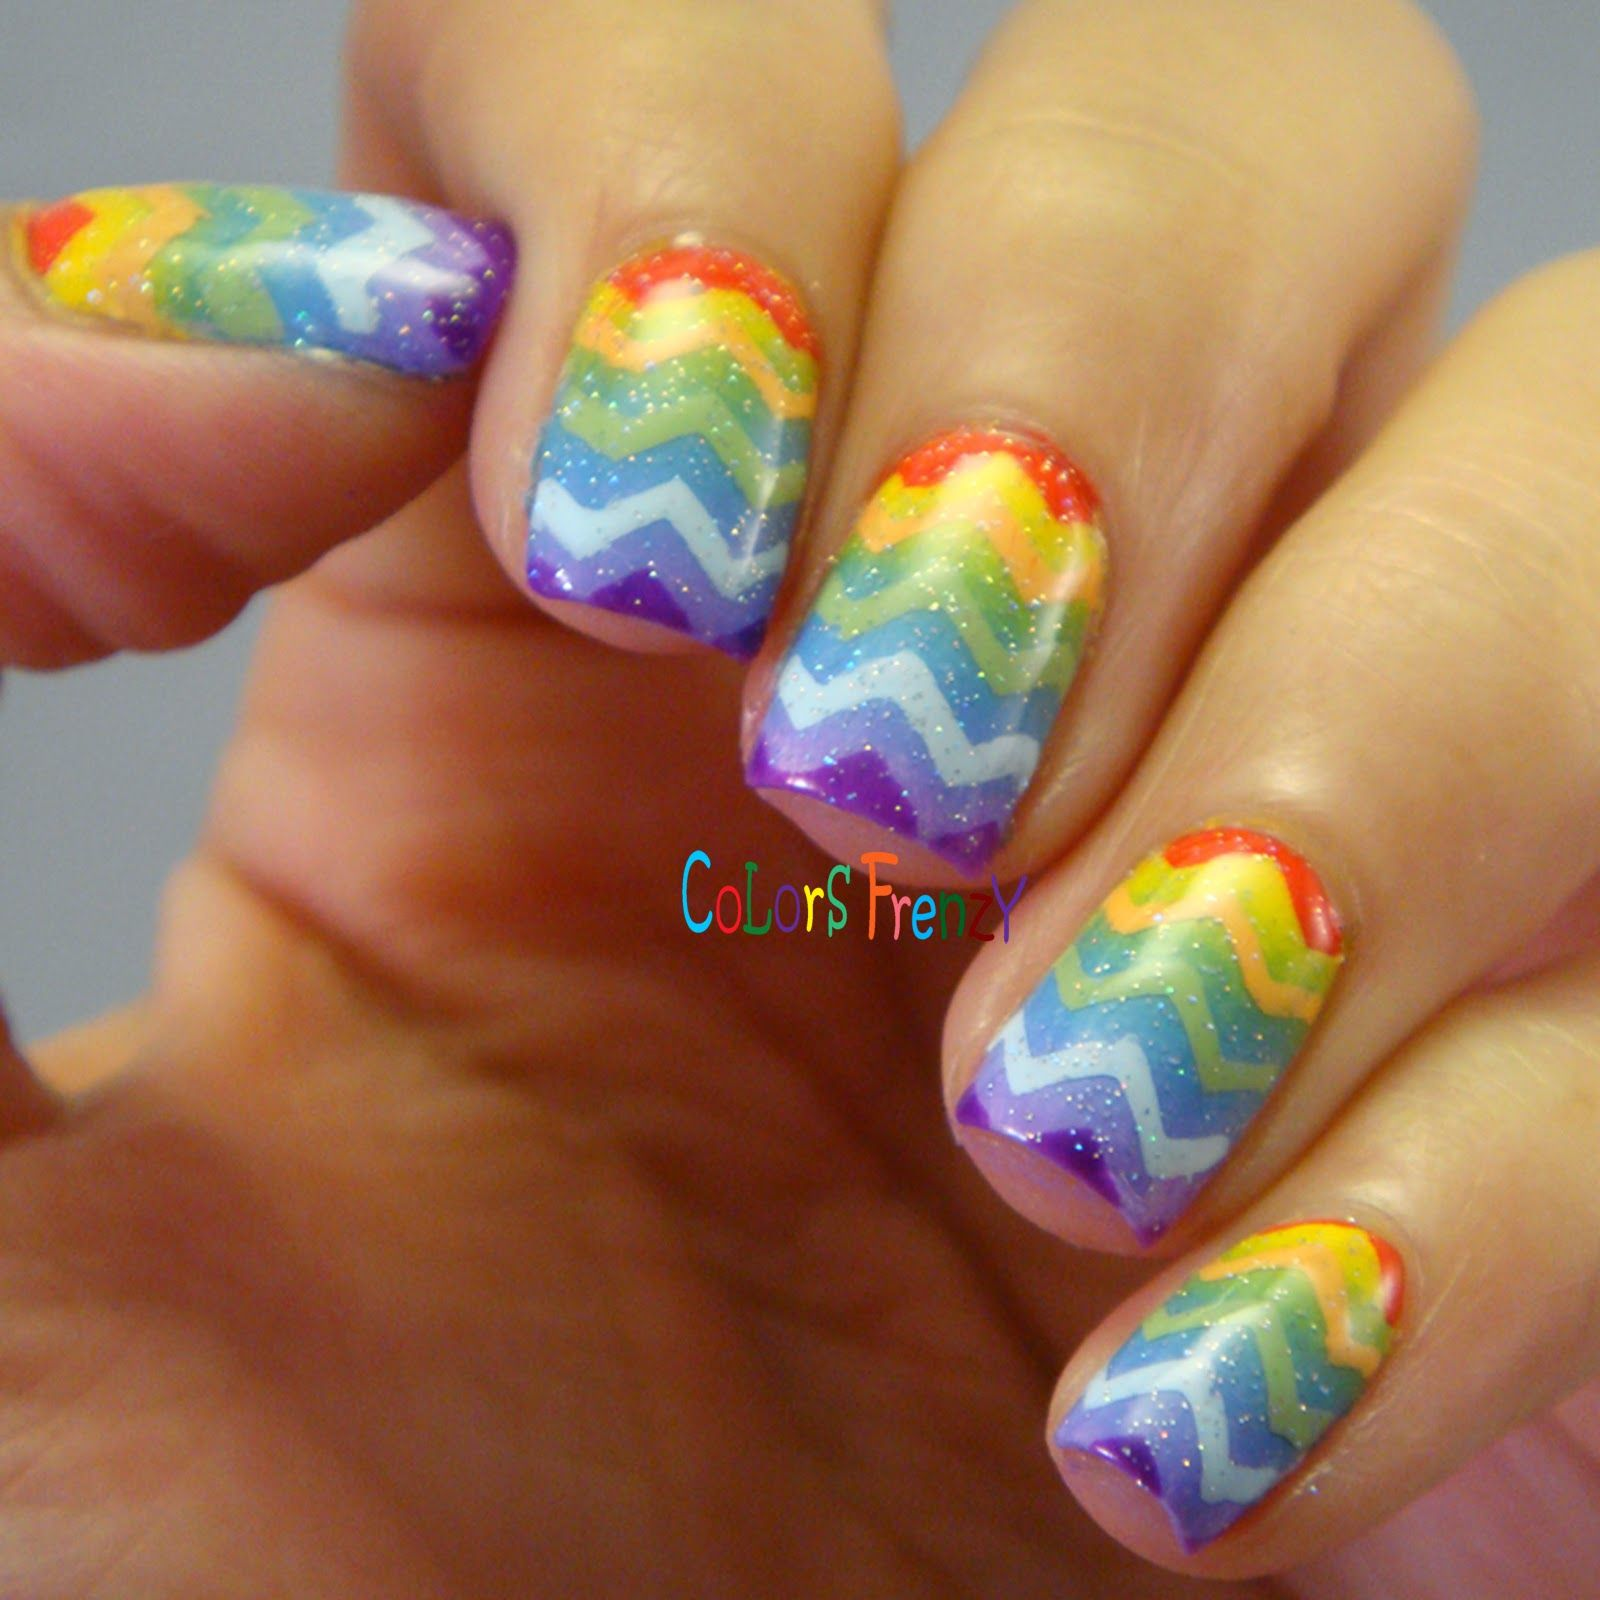 Colors Frenzy: Twin Post with PJ's and Polish - Rainbow Mani